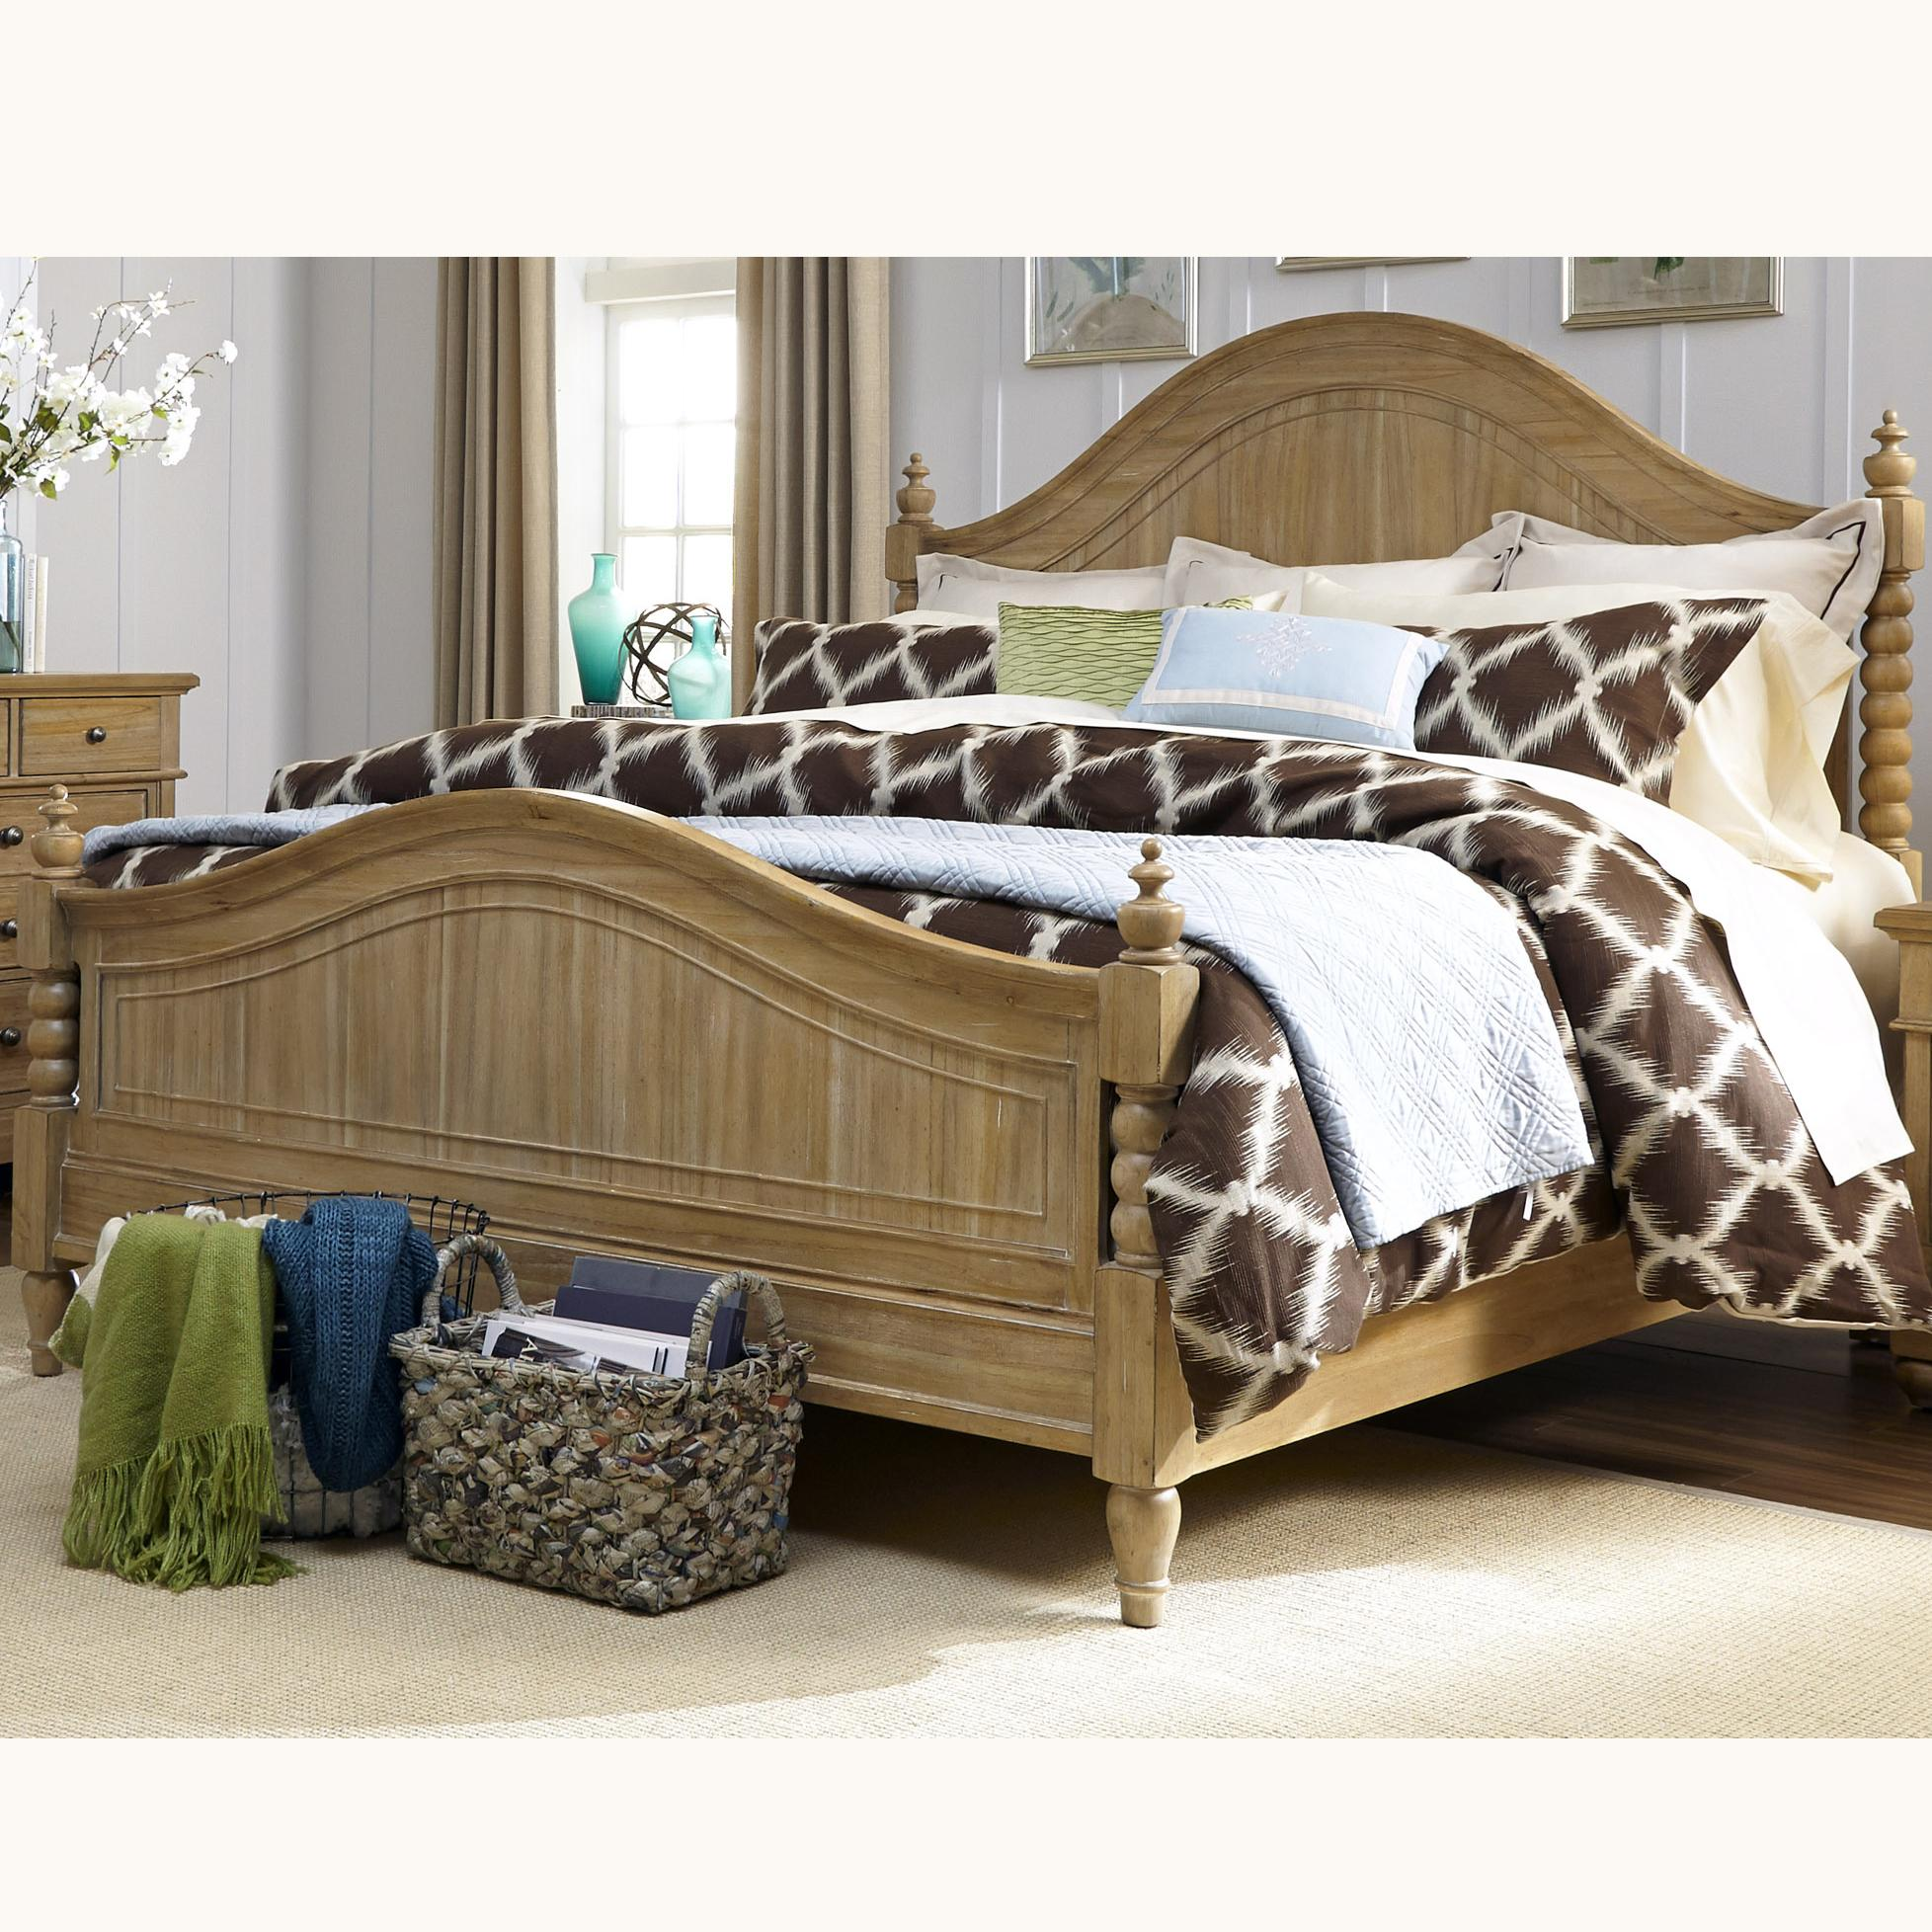 Liberty Furniture Harbor View King Poster Bed with Barley Twist Accents - Item Number: 531-BR-KPS